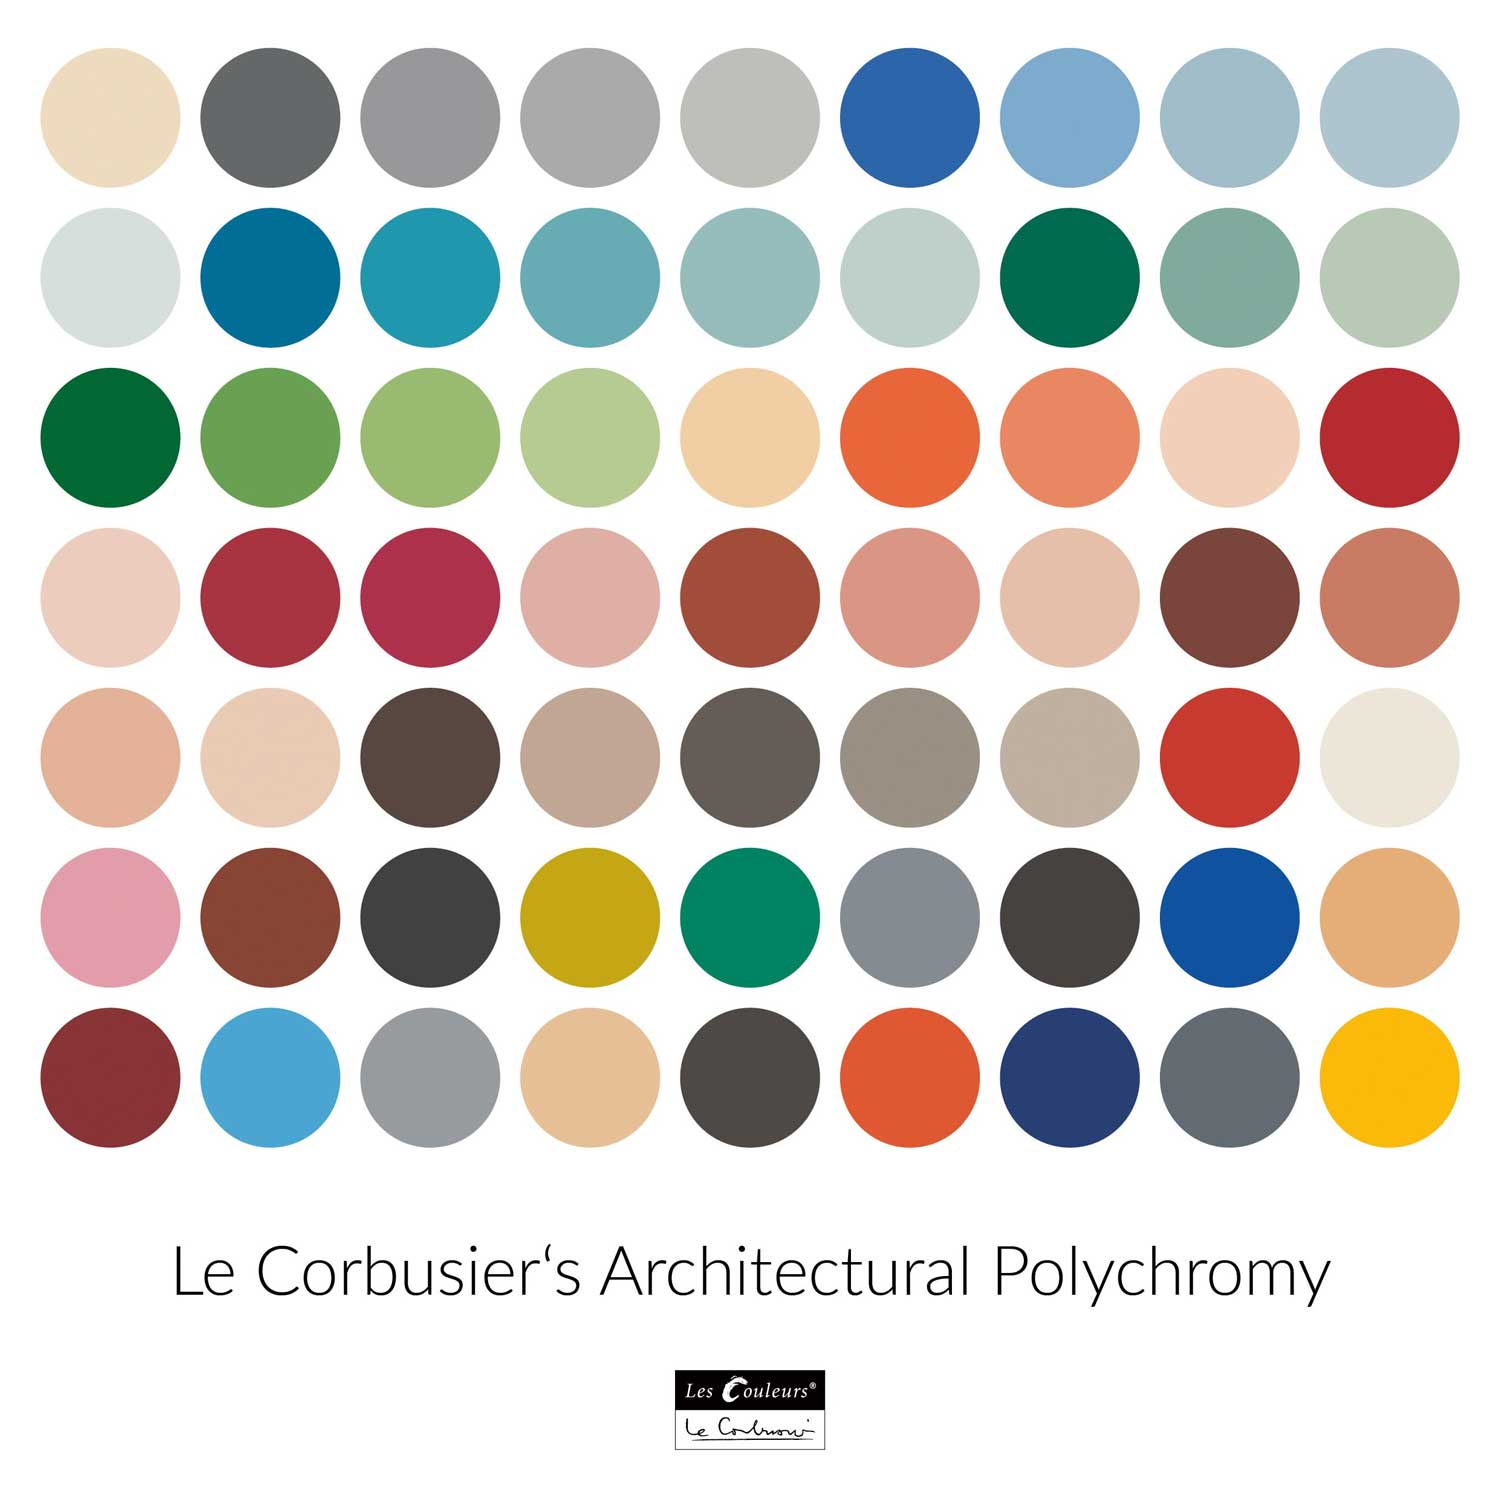 The complete color palette of Architectural Polychromy